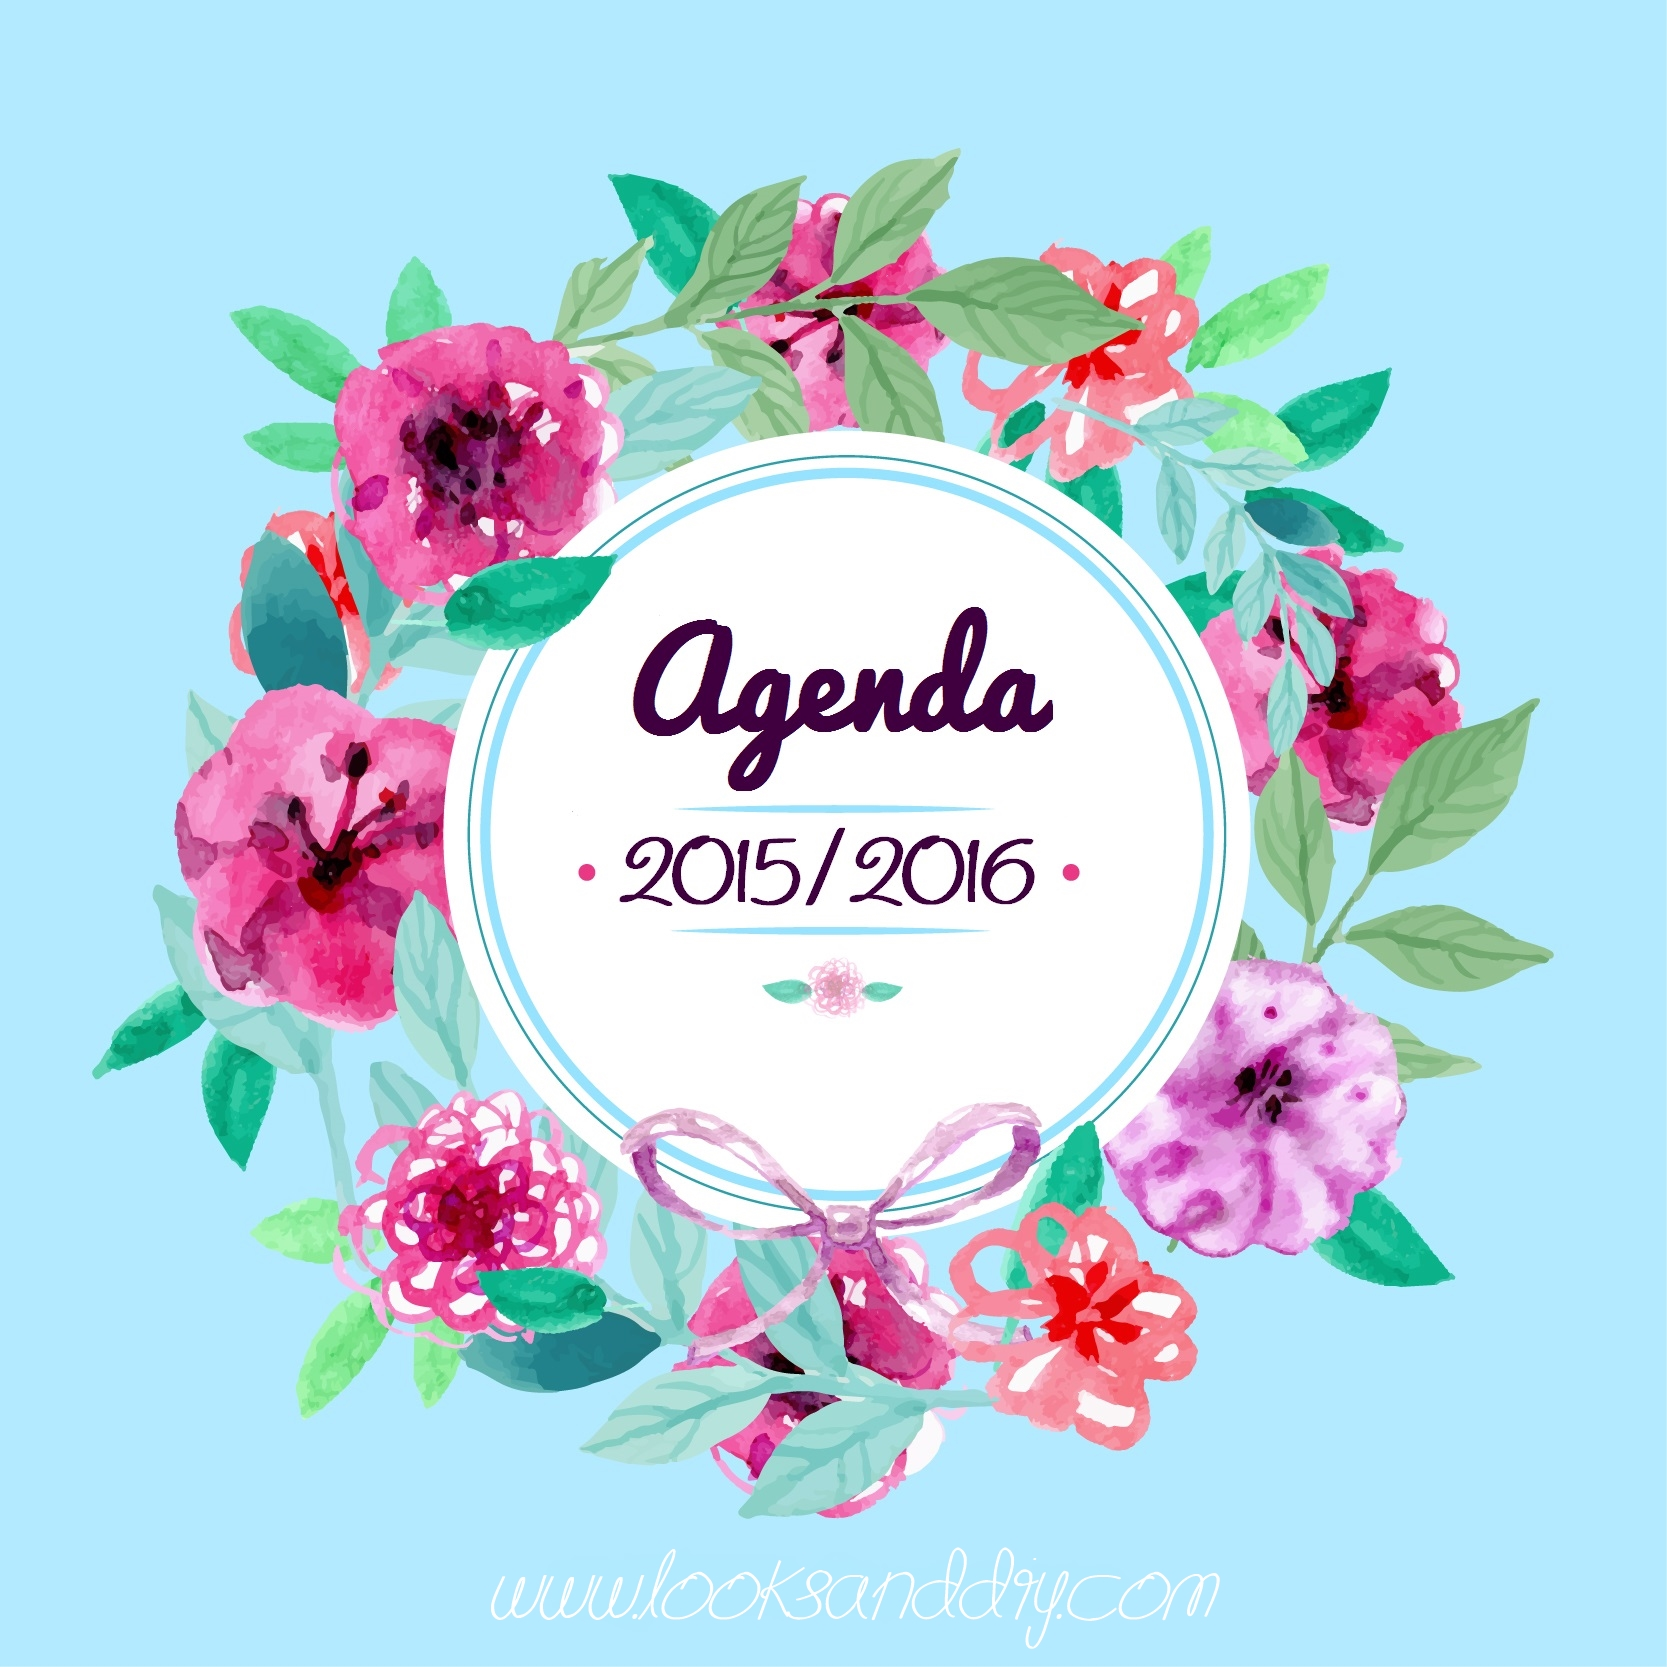 DIY ~ Agenda gratis imprimible 2015/16 ~ looks and diy